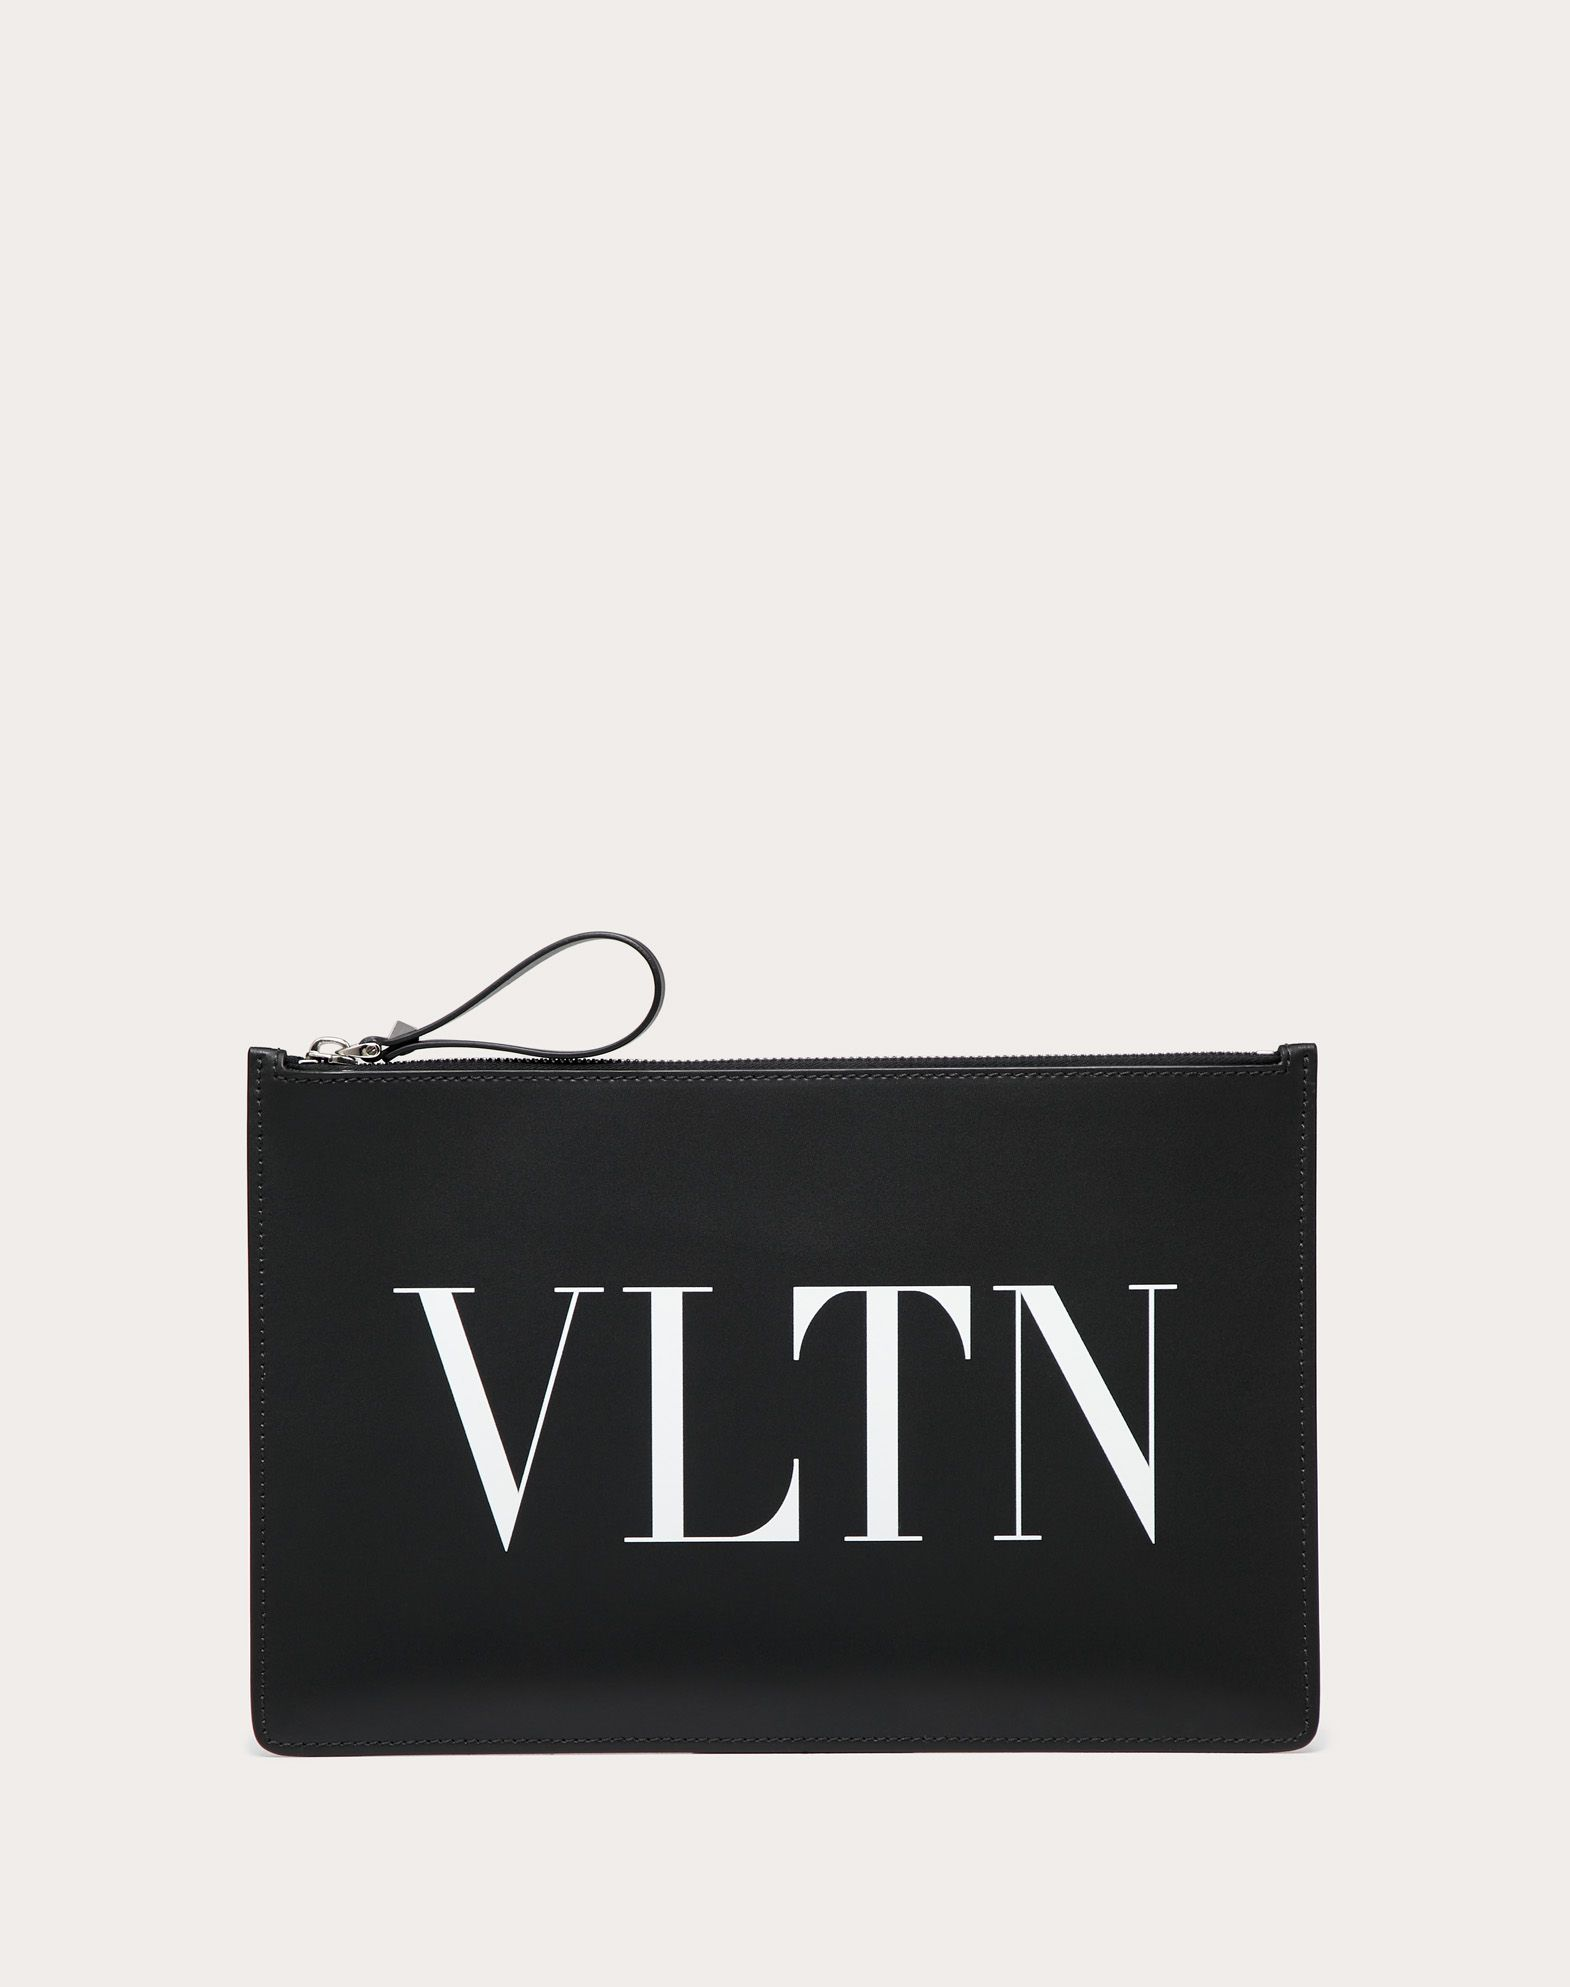 VALENTINO Logo Zip Internal pocket  46582711rr